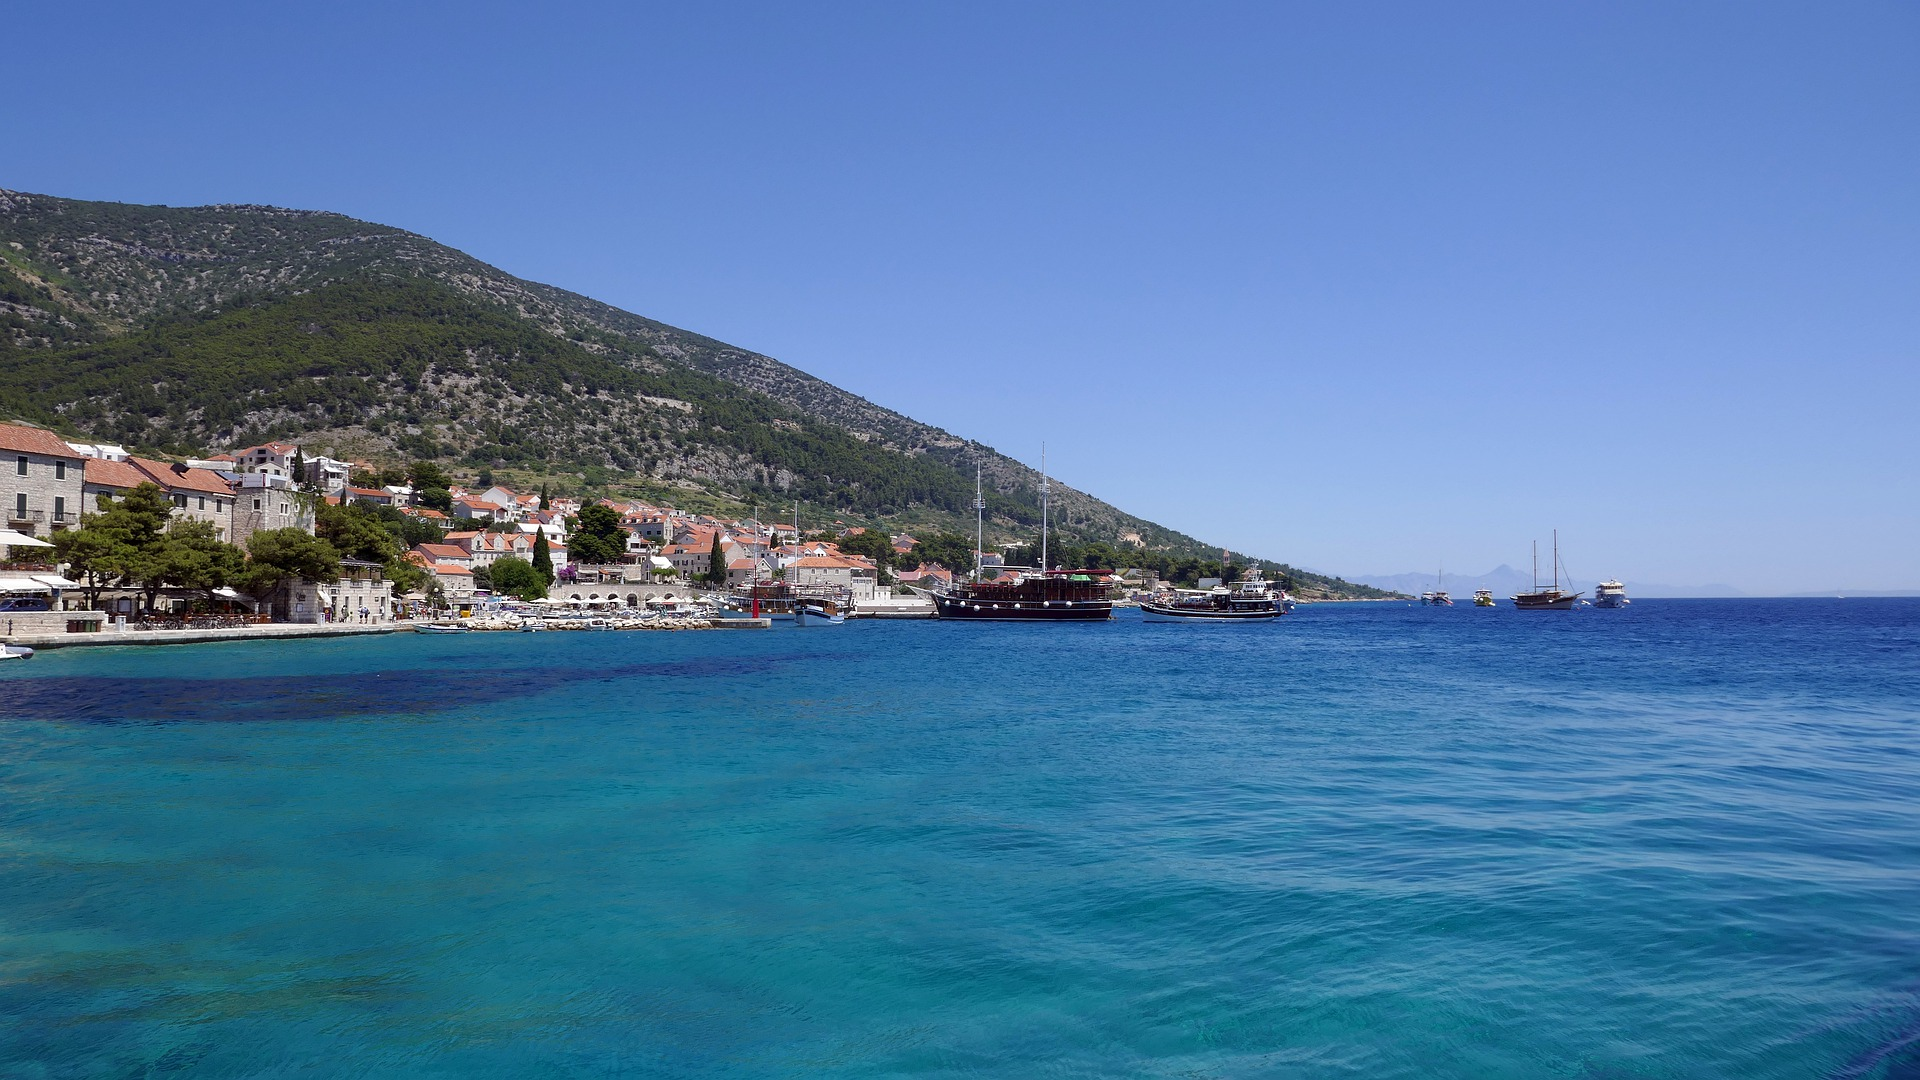 Old hotel with great potential on the island Brac